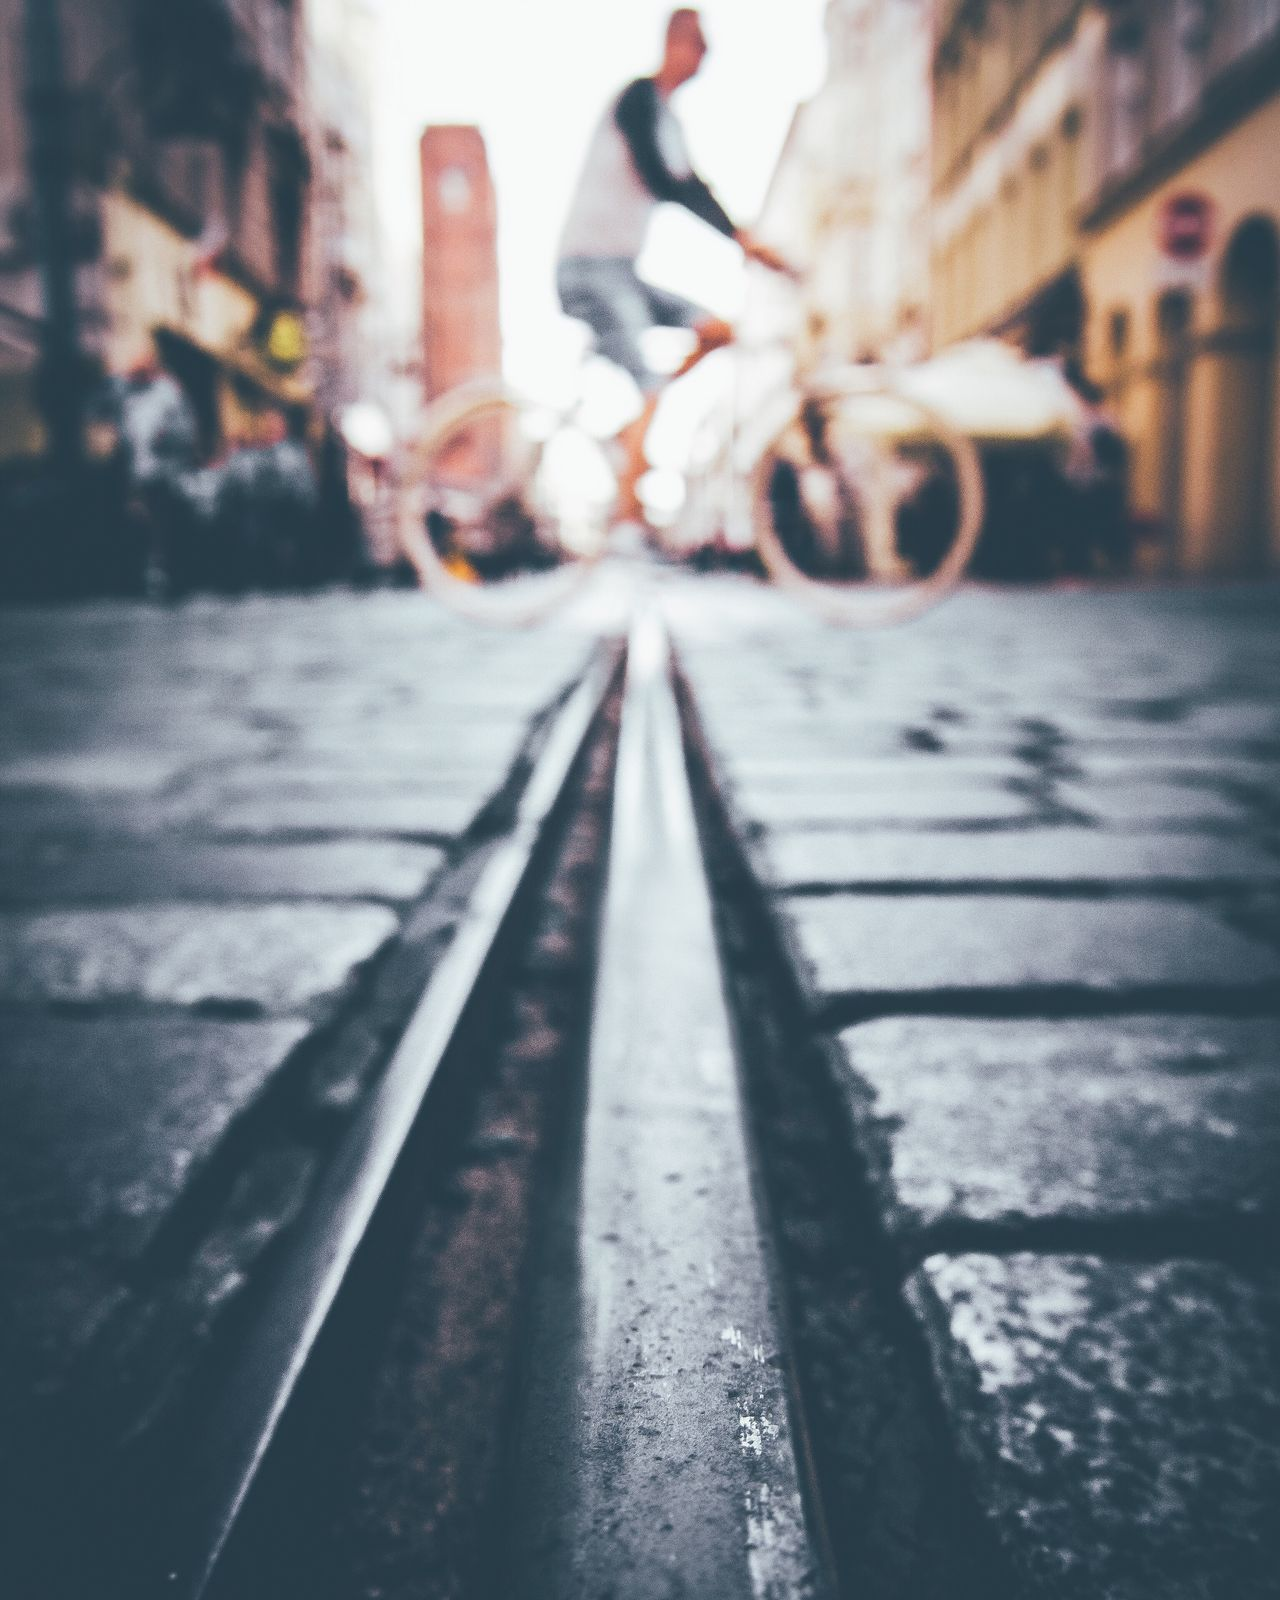 CyclingUnites Transportation Street Built Structure Long Surface Level Architecture The Way Forward Building Exterior Walkway Focus On Foreground City Life Outdoors